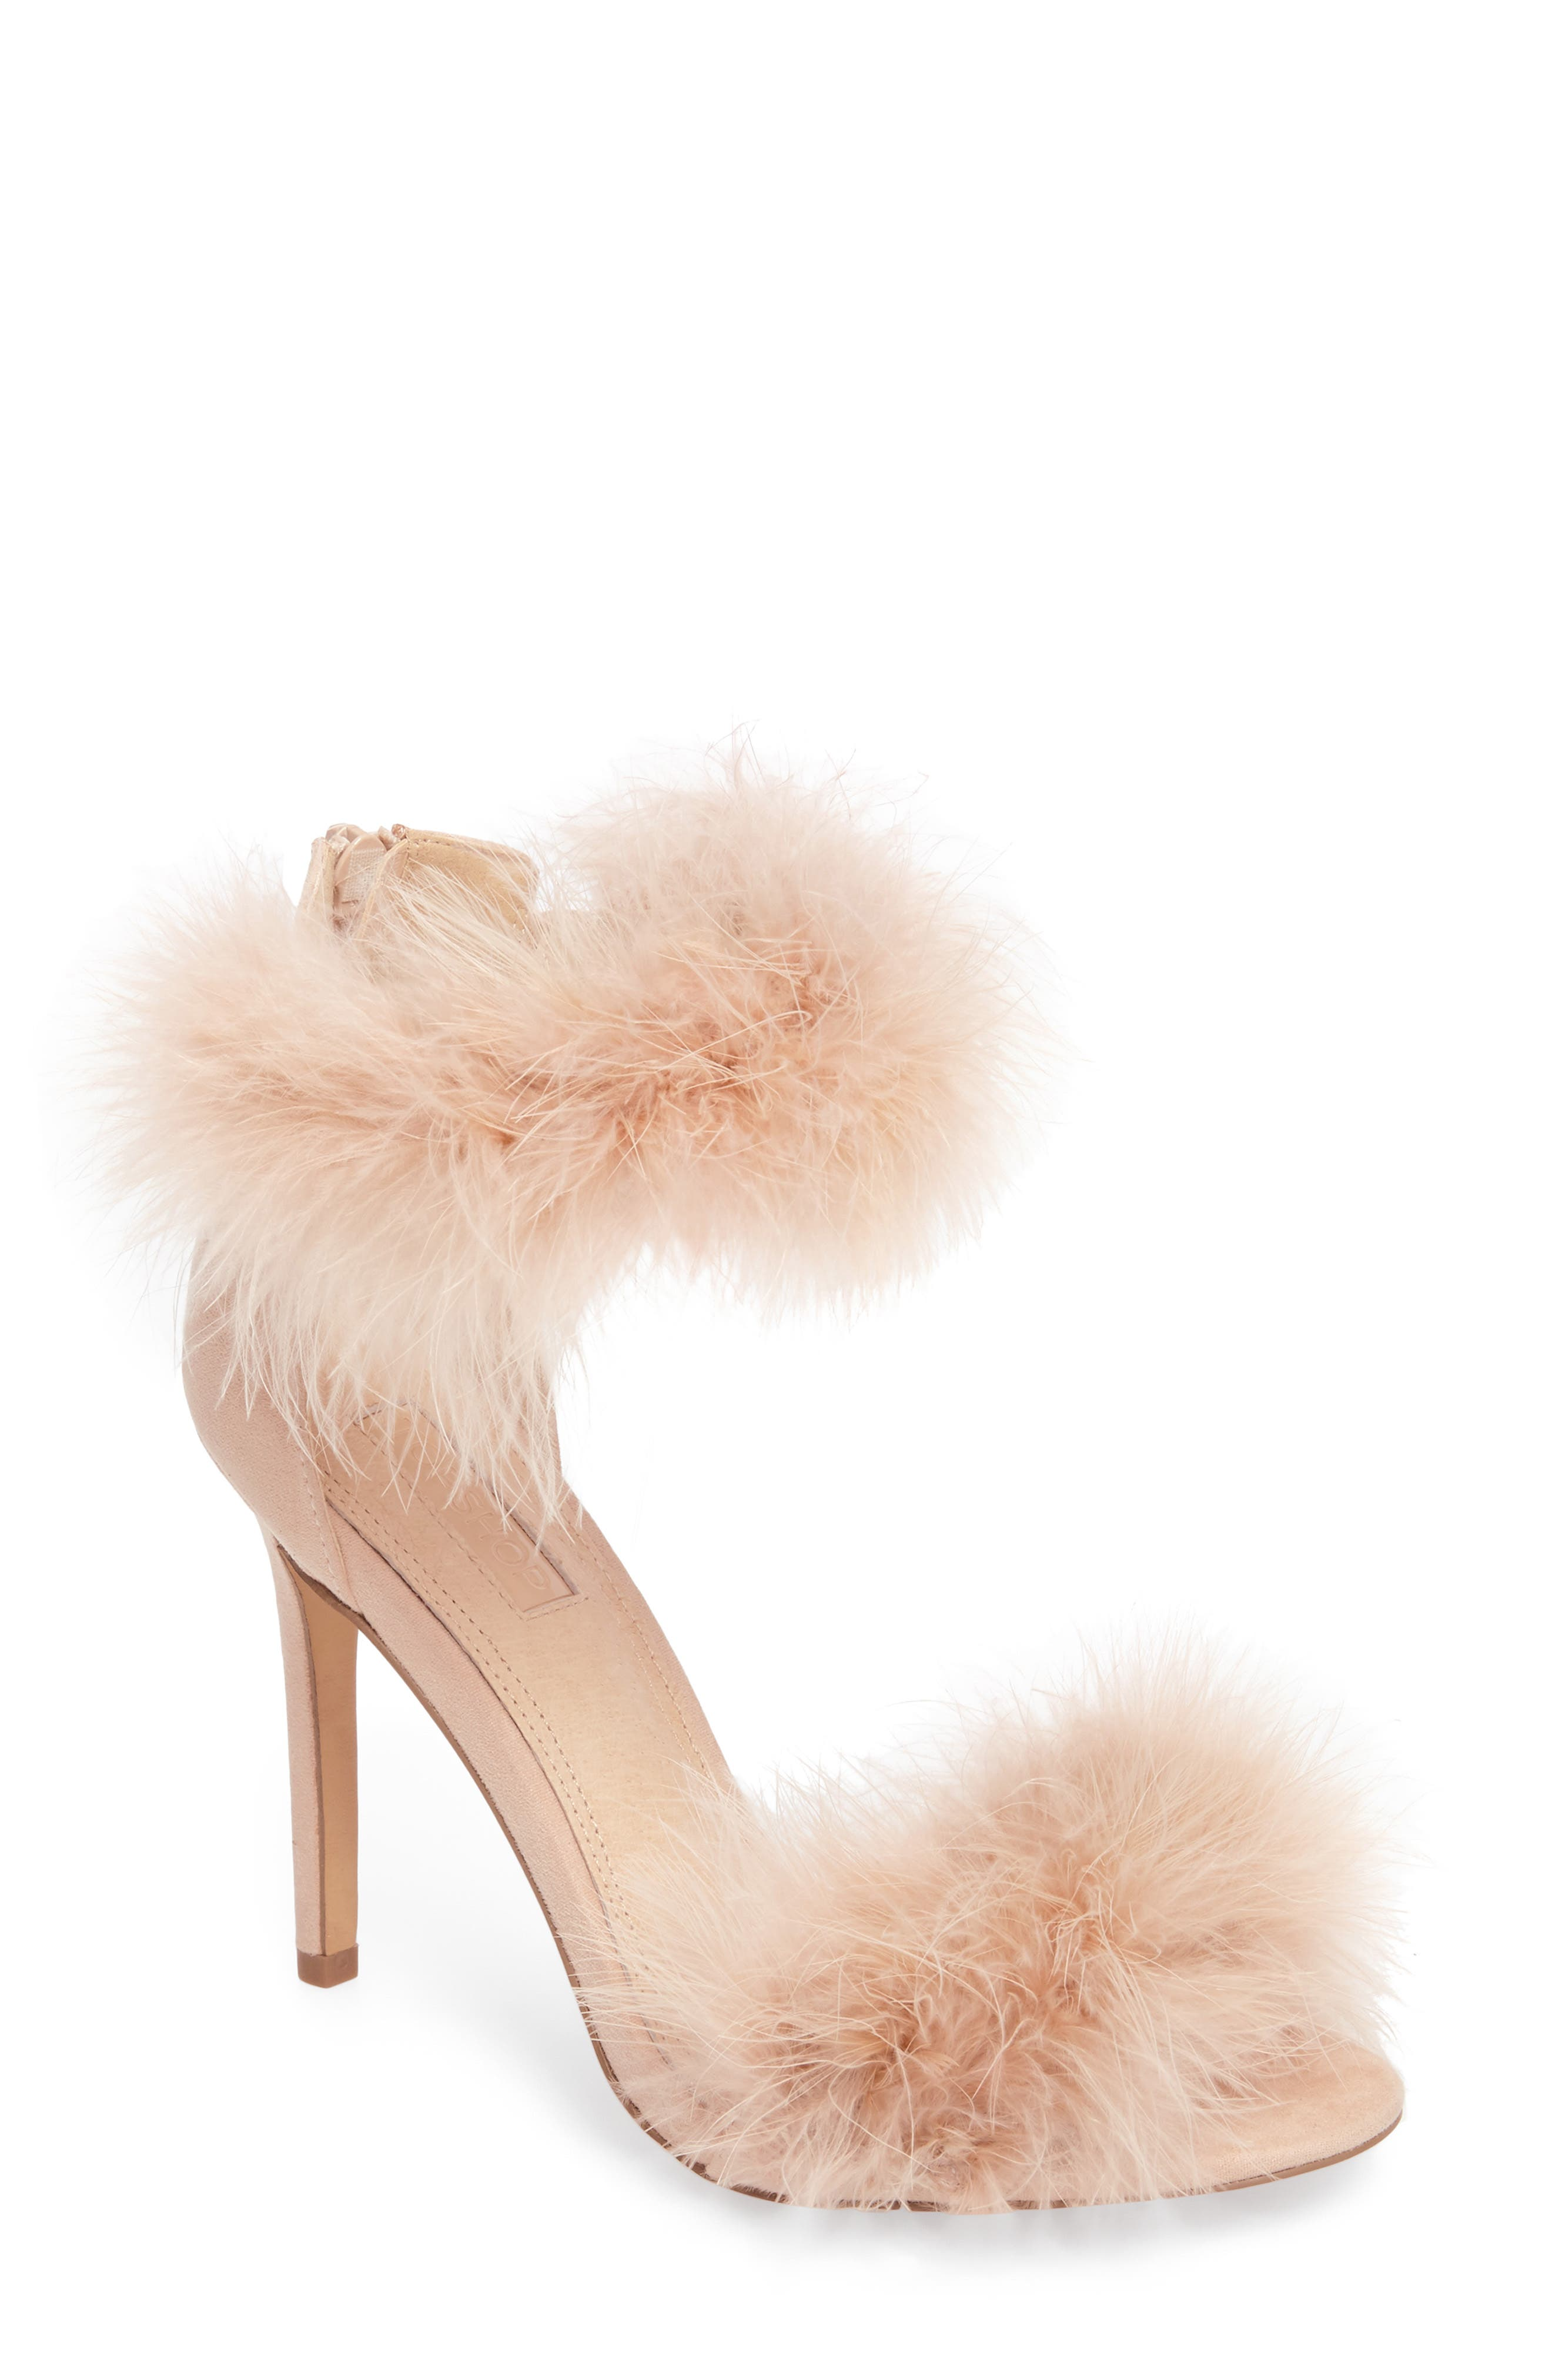 Feather Strap Sandal,                         Main,                         color, Nude